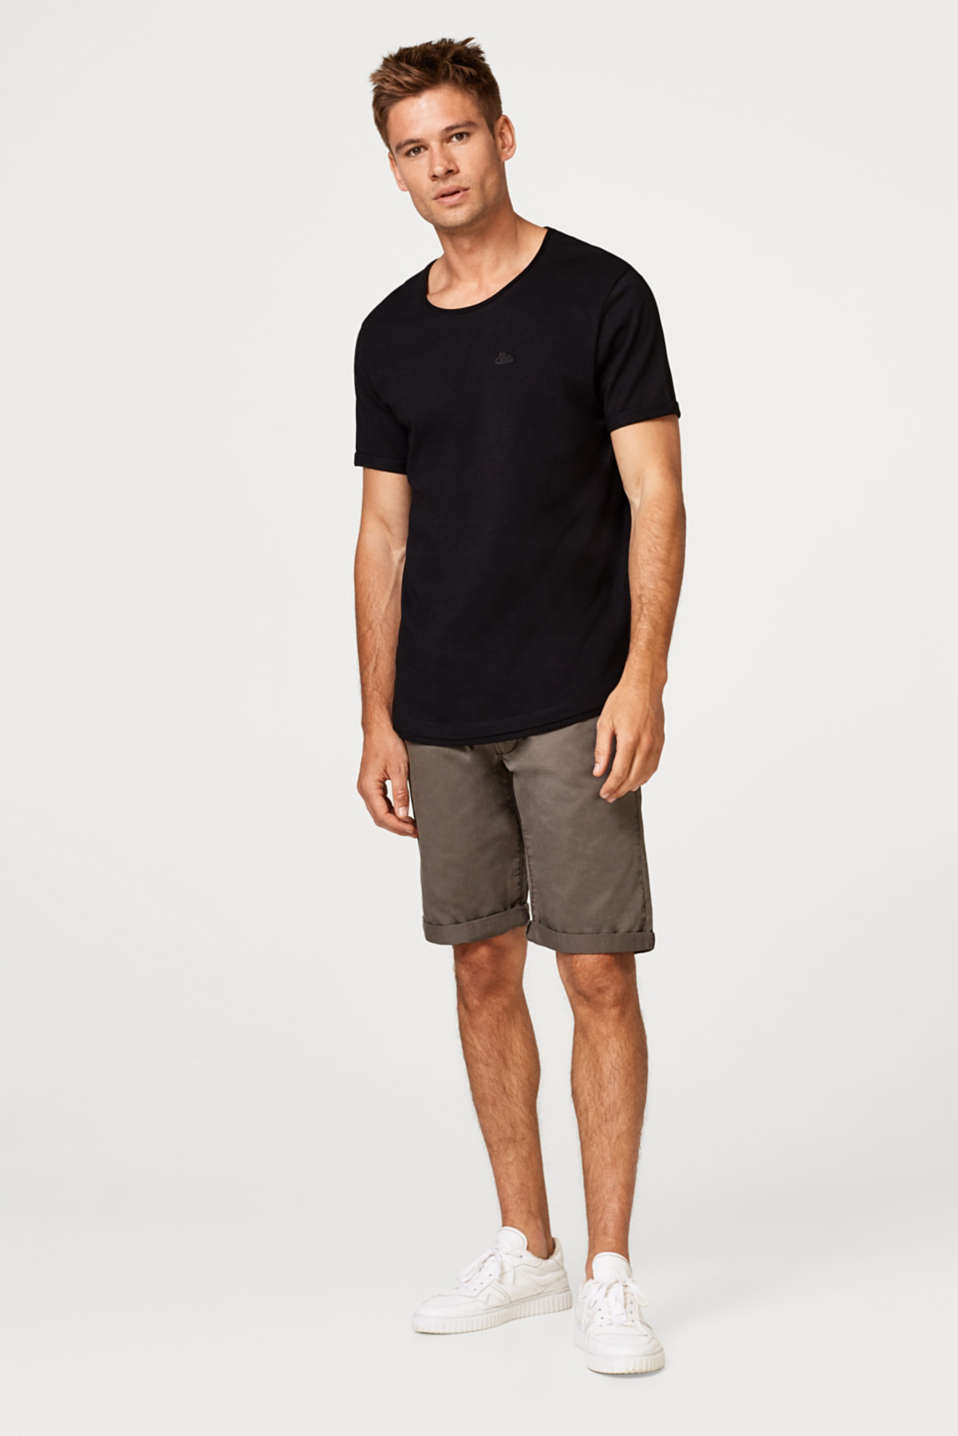 Chino shorts with drawstring, made of cotton